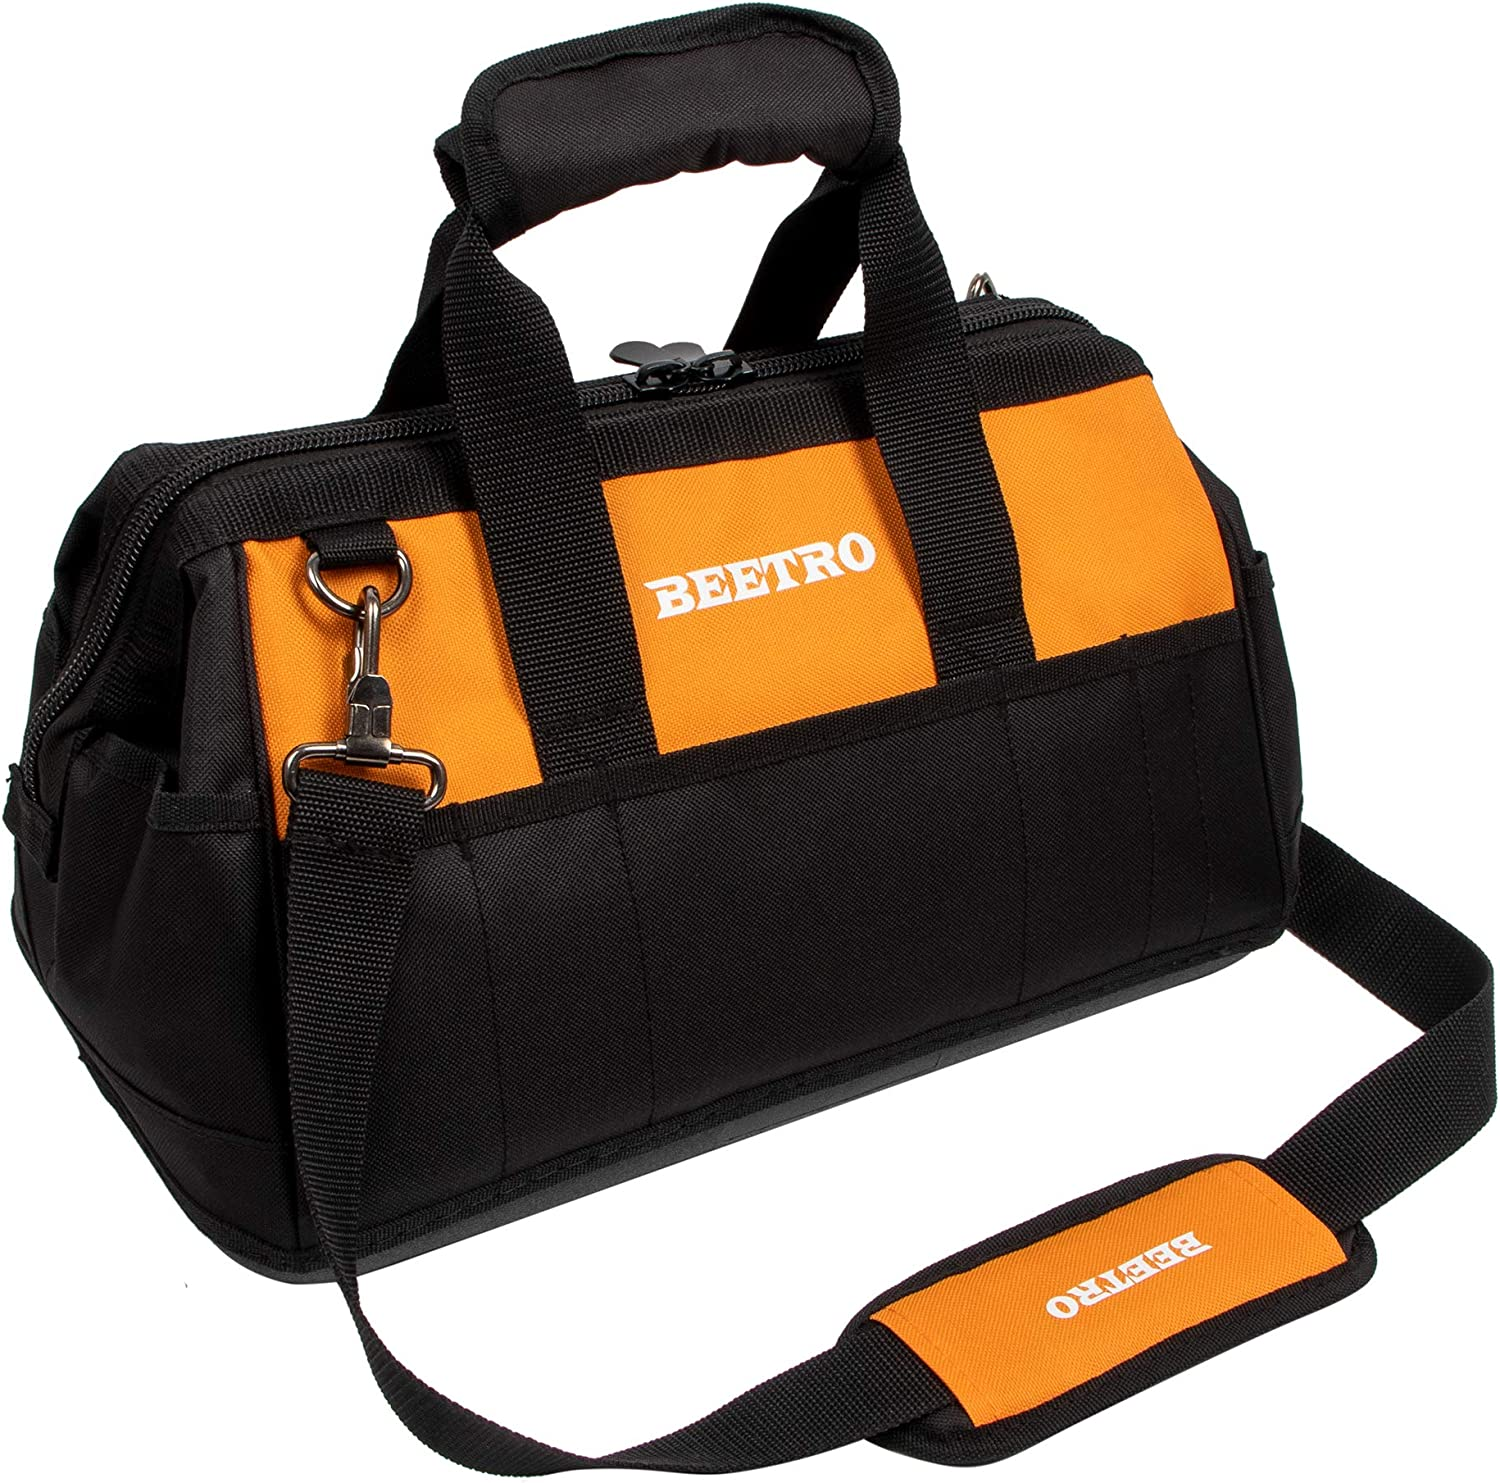 BEETRO 16.5-inch Wide Mouth Tool Shoulder with Bag Adjustable Cash special price Special price for a limited time S